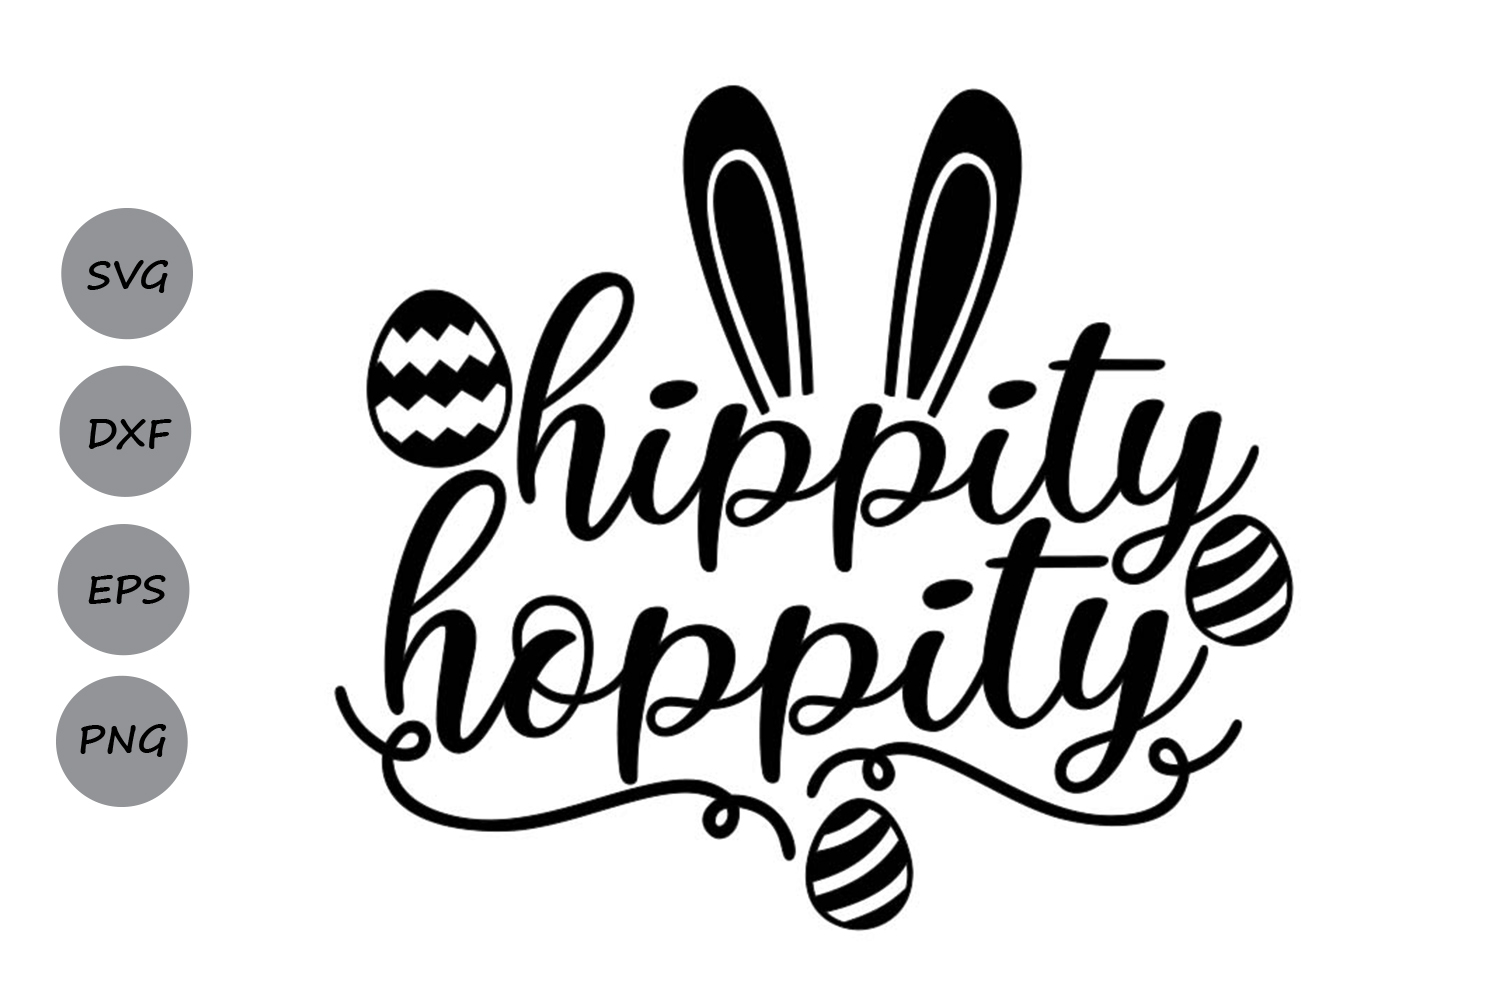 Download Free Hippity Hoppity Graphic By Cosmosfineart Creative Fabrica for Cricut Explore, Silhouette and other cutting machines.